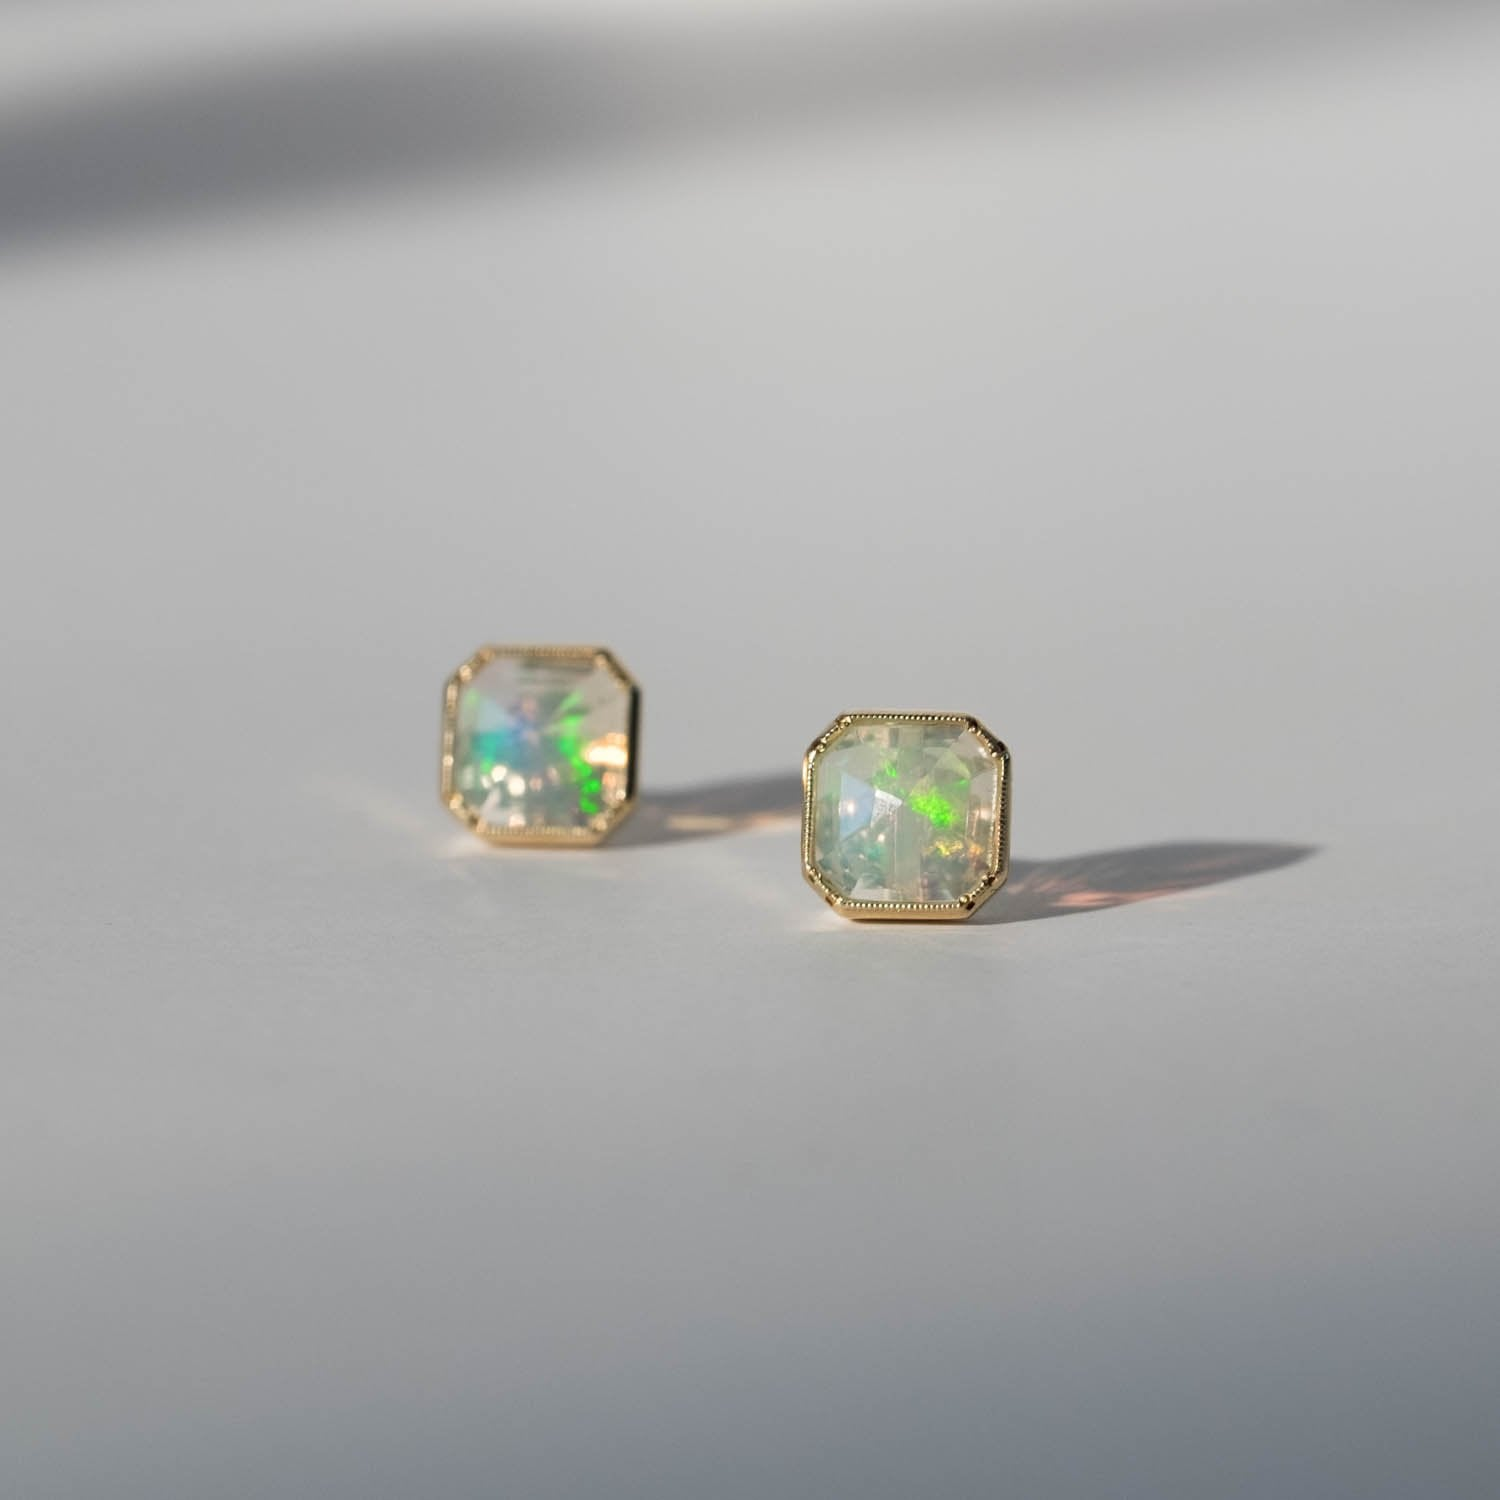 Maman Square Bezel Opal Earrings